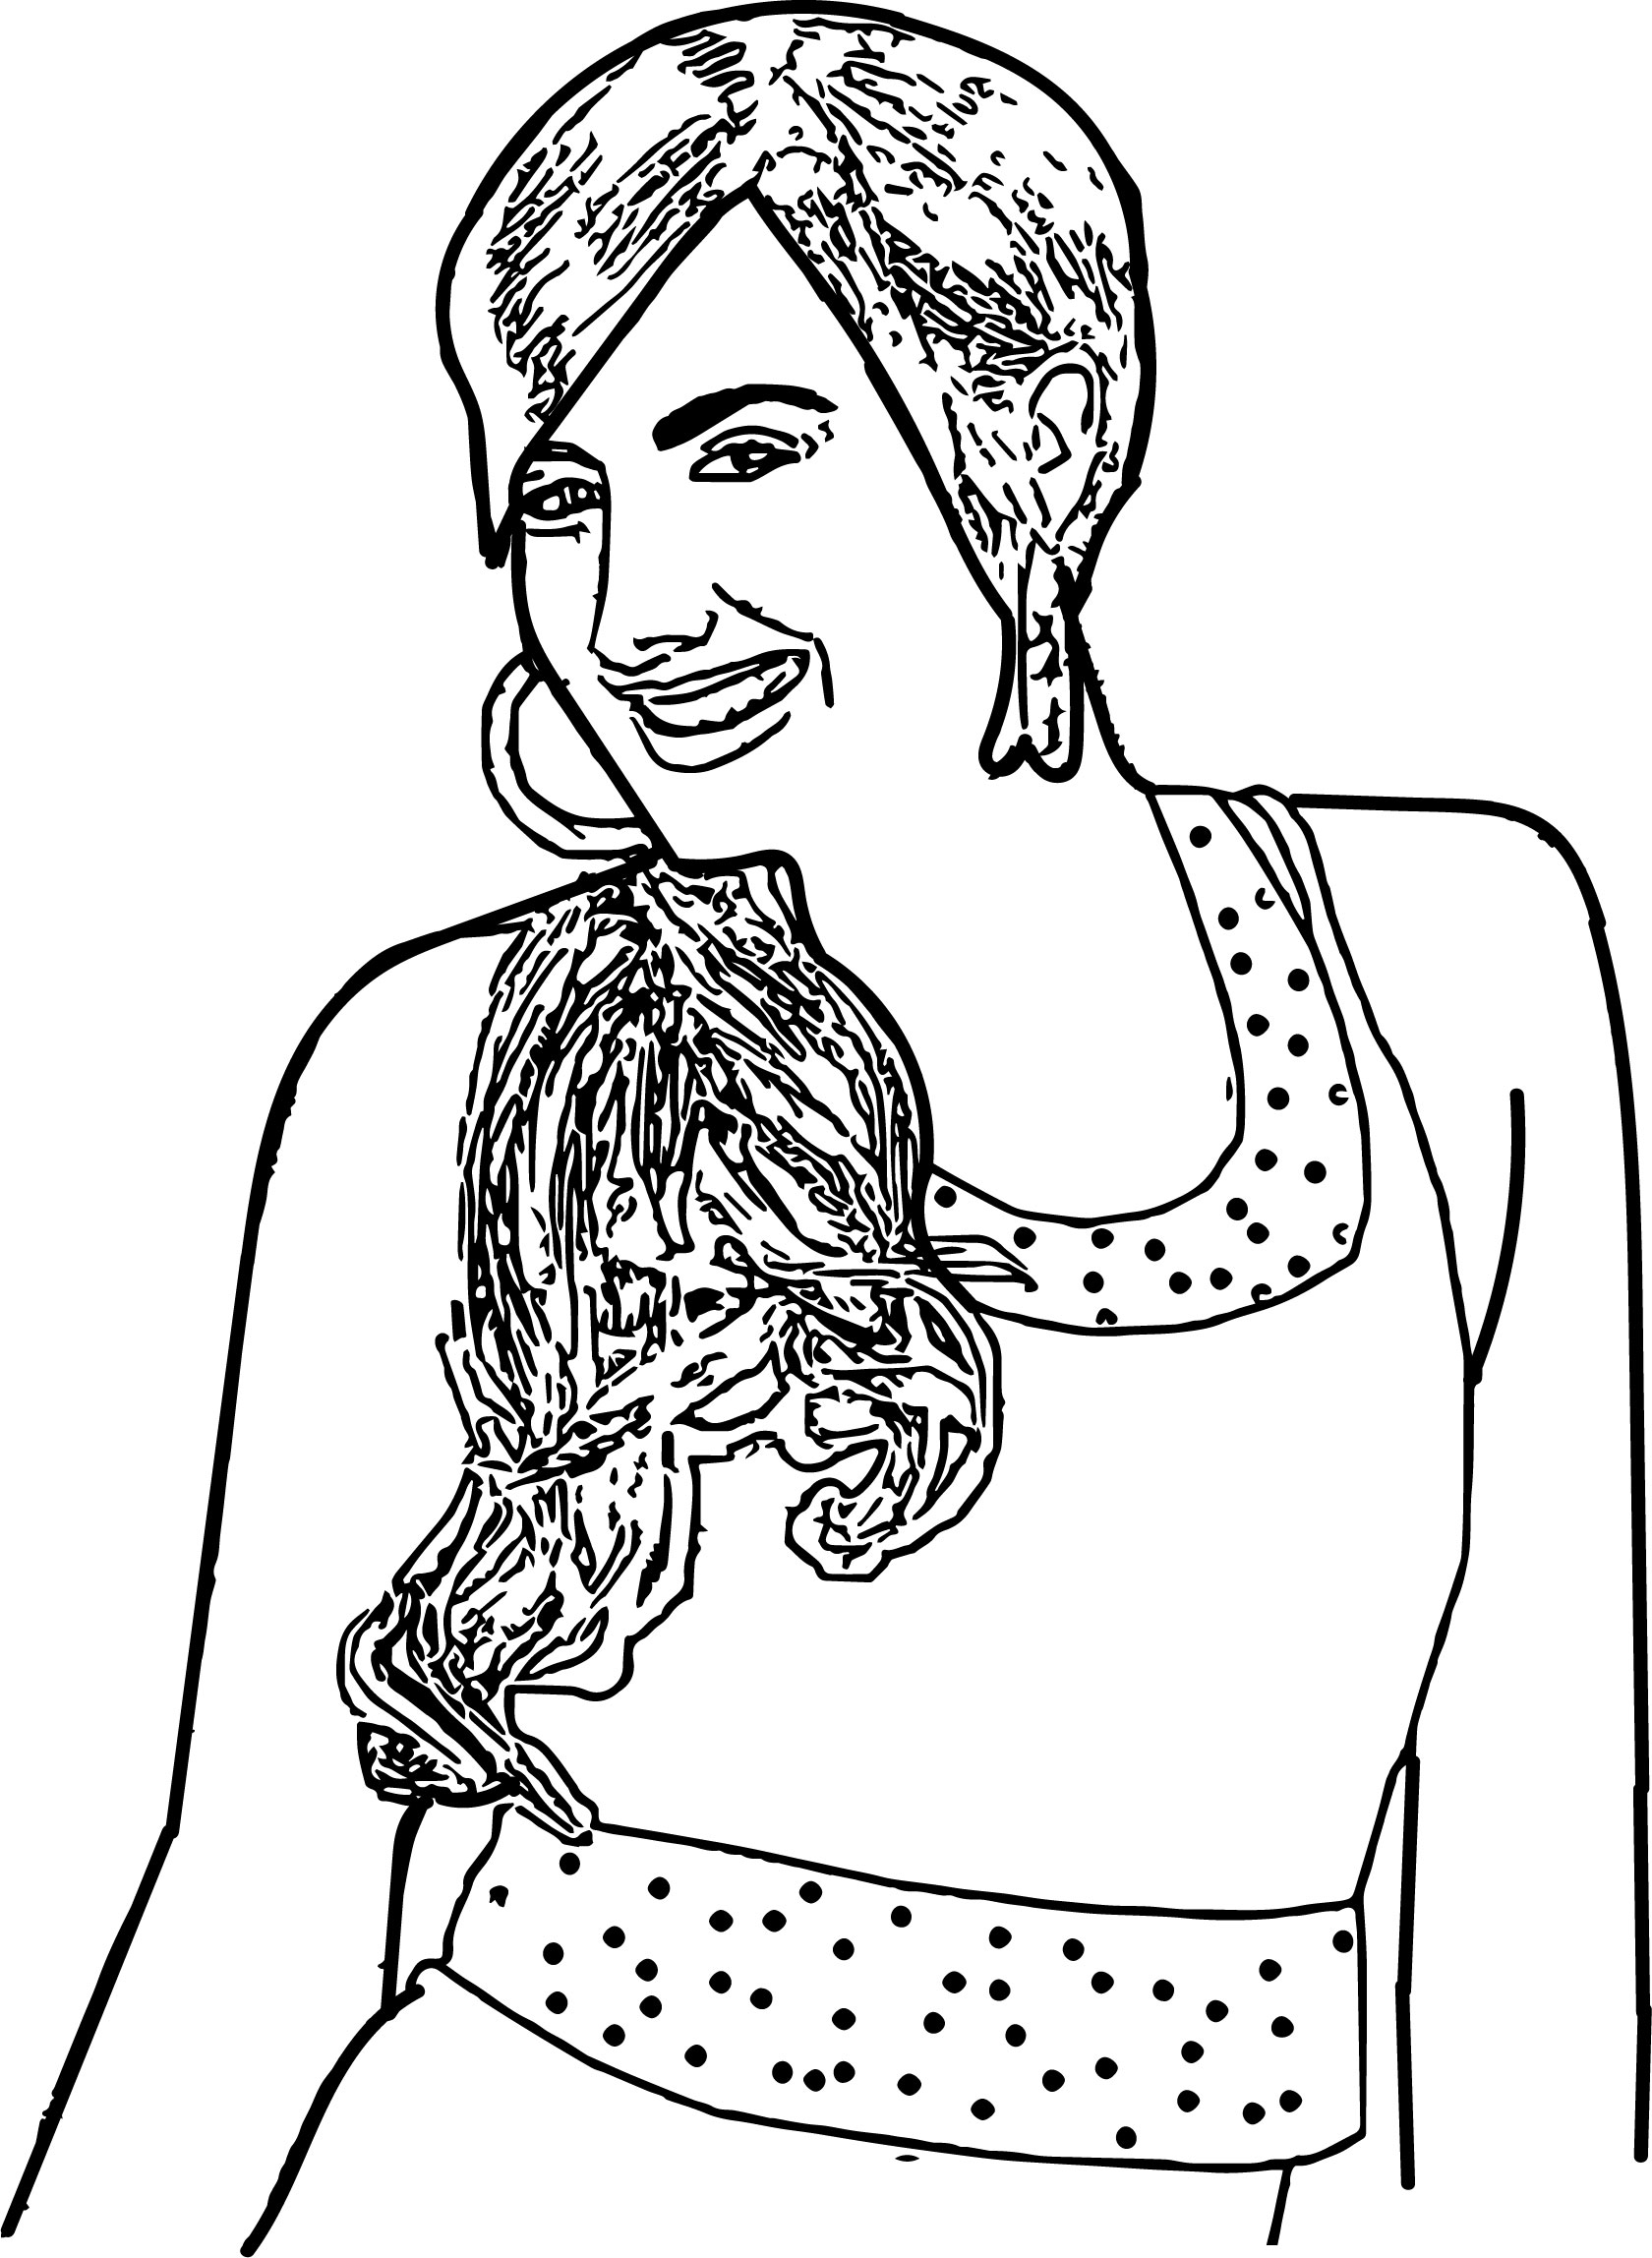 High School Musical Characters Sharpay Evans Coloring